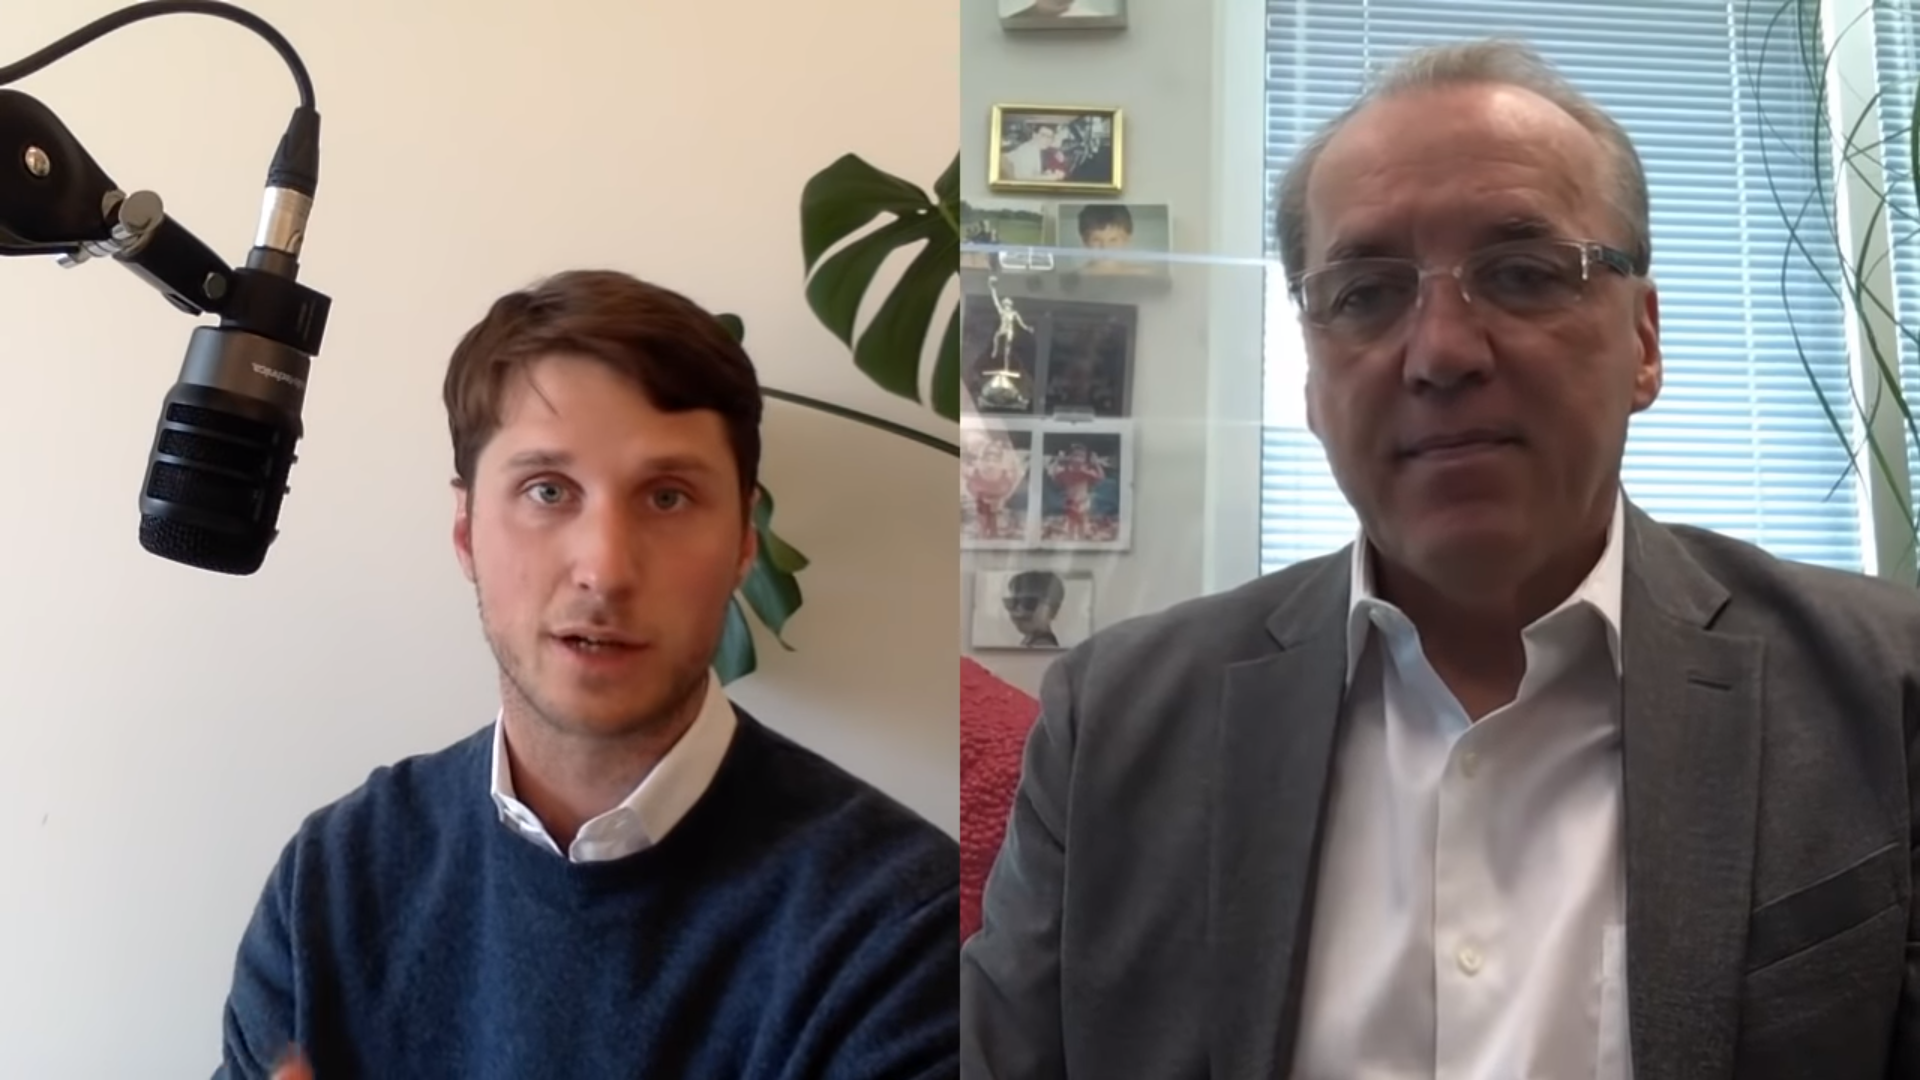 Frank Holmes - Hive Blockchain VS Genesis Mining. A proxy war, what happens next? I sit down with Hive Blockchain interim CEO Frank Holmes to converse about all things crypto & the recent public hostility between Hive and their operational partner Genesis Mining.